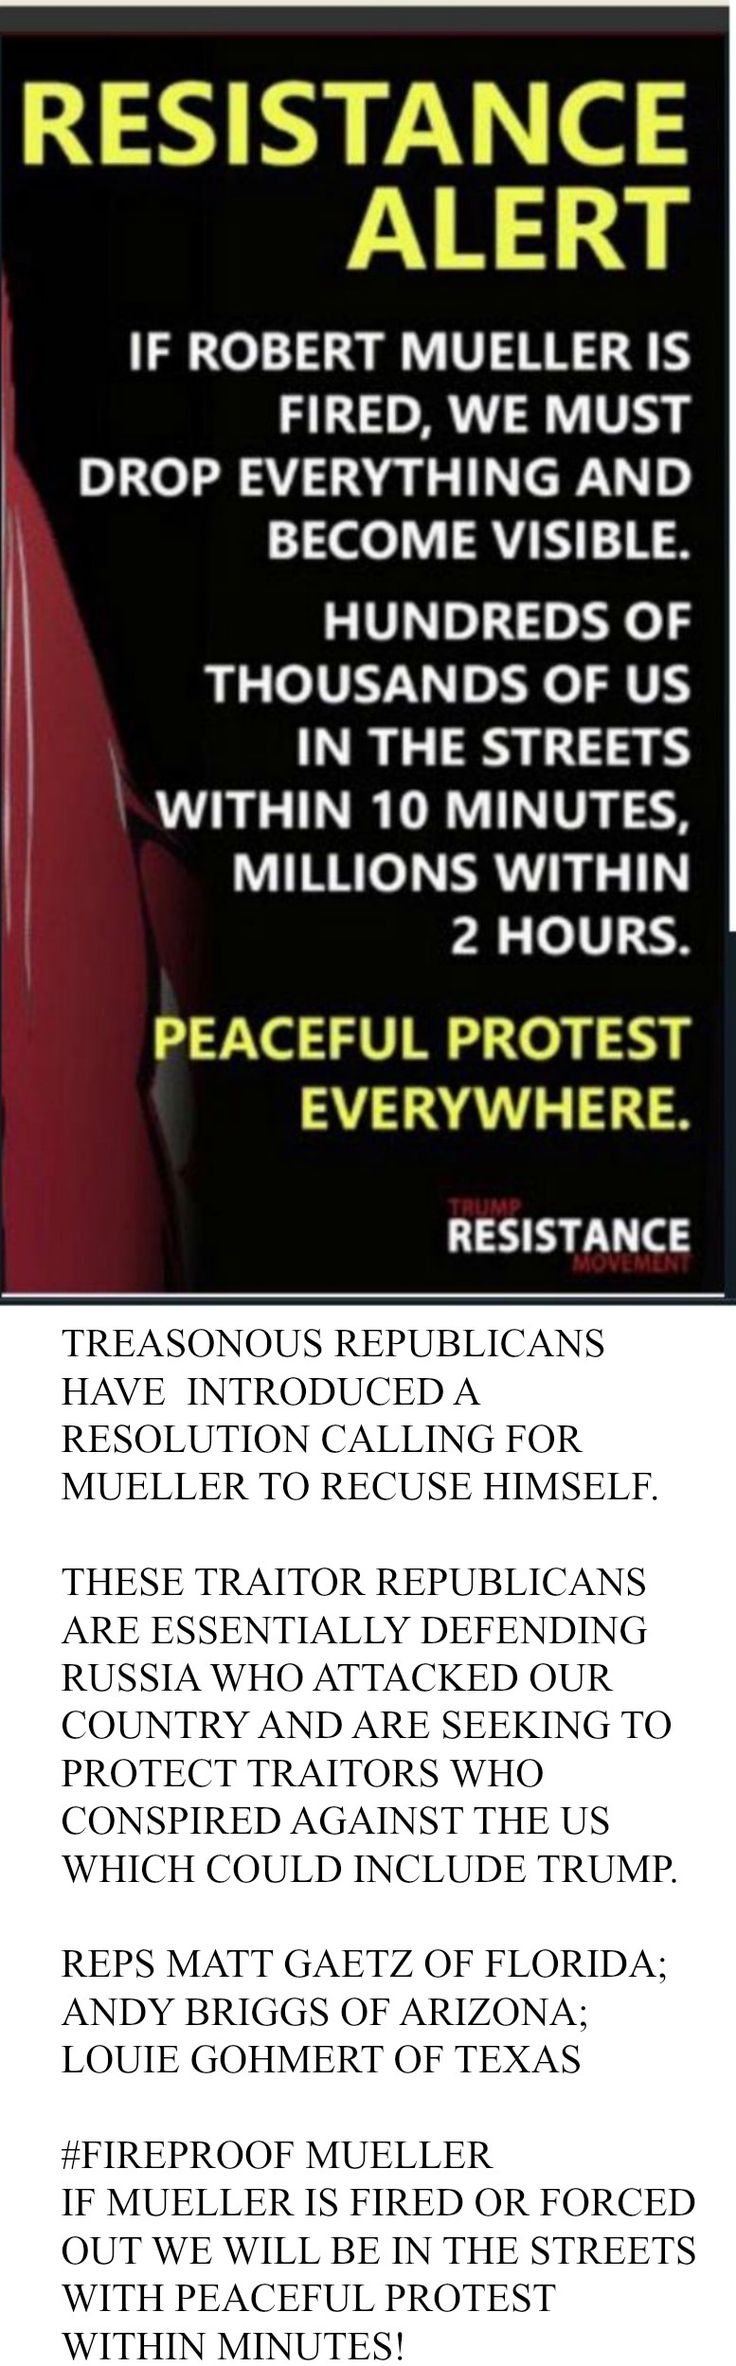 #FireproofMueller - Treasonous Repukes have introduced a Resolution for Mueller to recuse himself. Won't happen. If Mueller fired, we hit the streets!